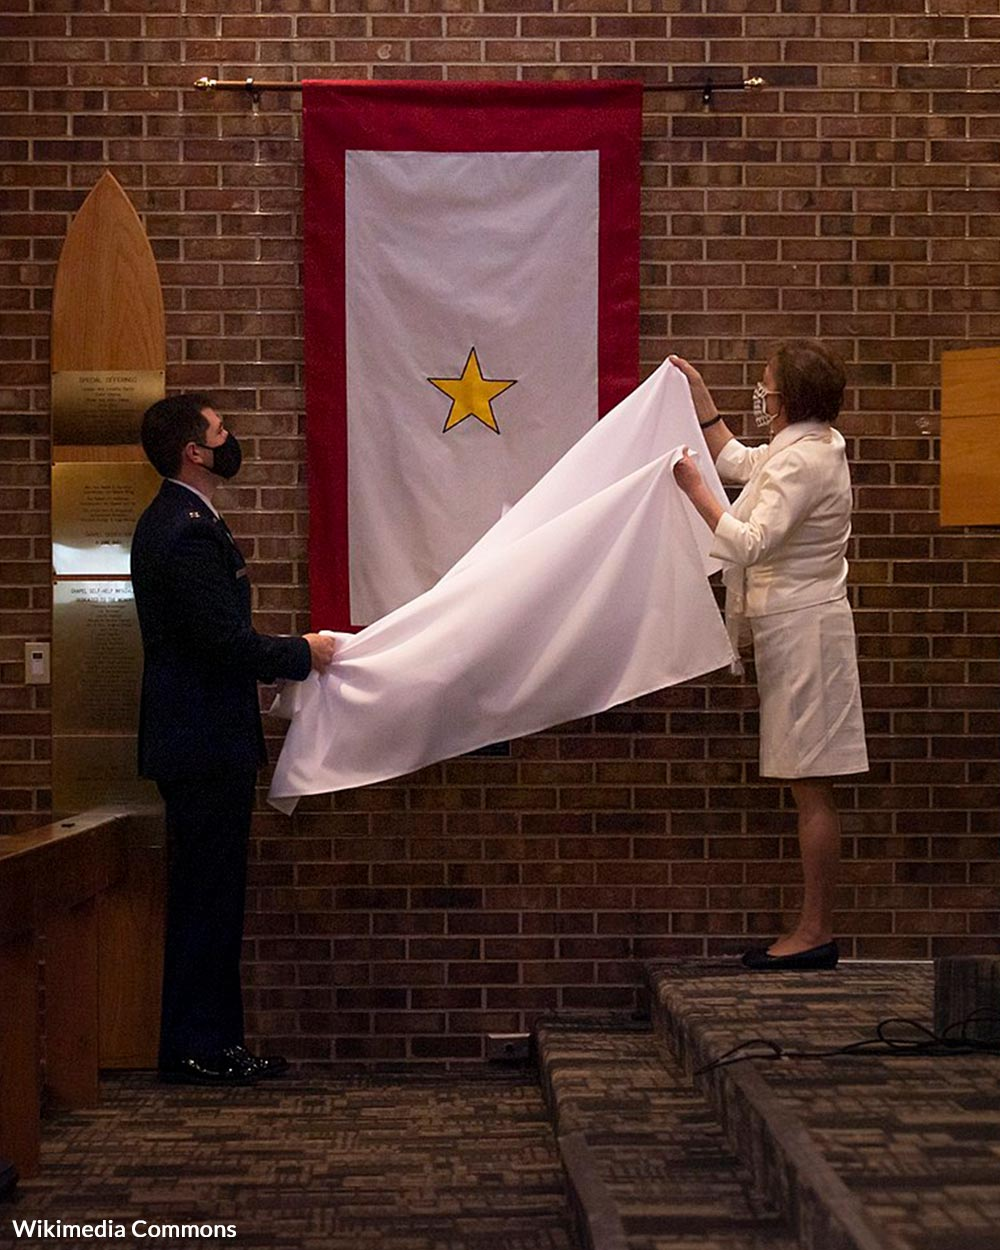 The Gold Star flag represents a service member who has died in active service.